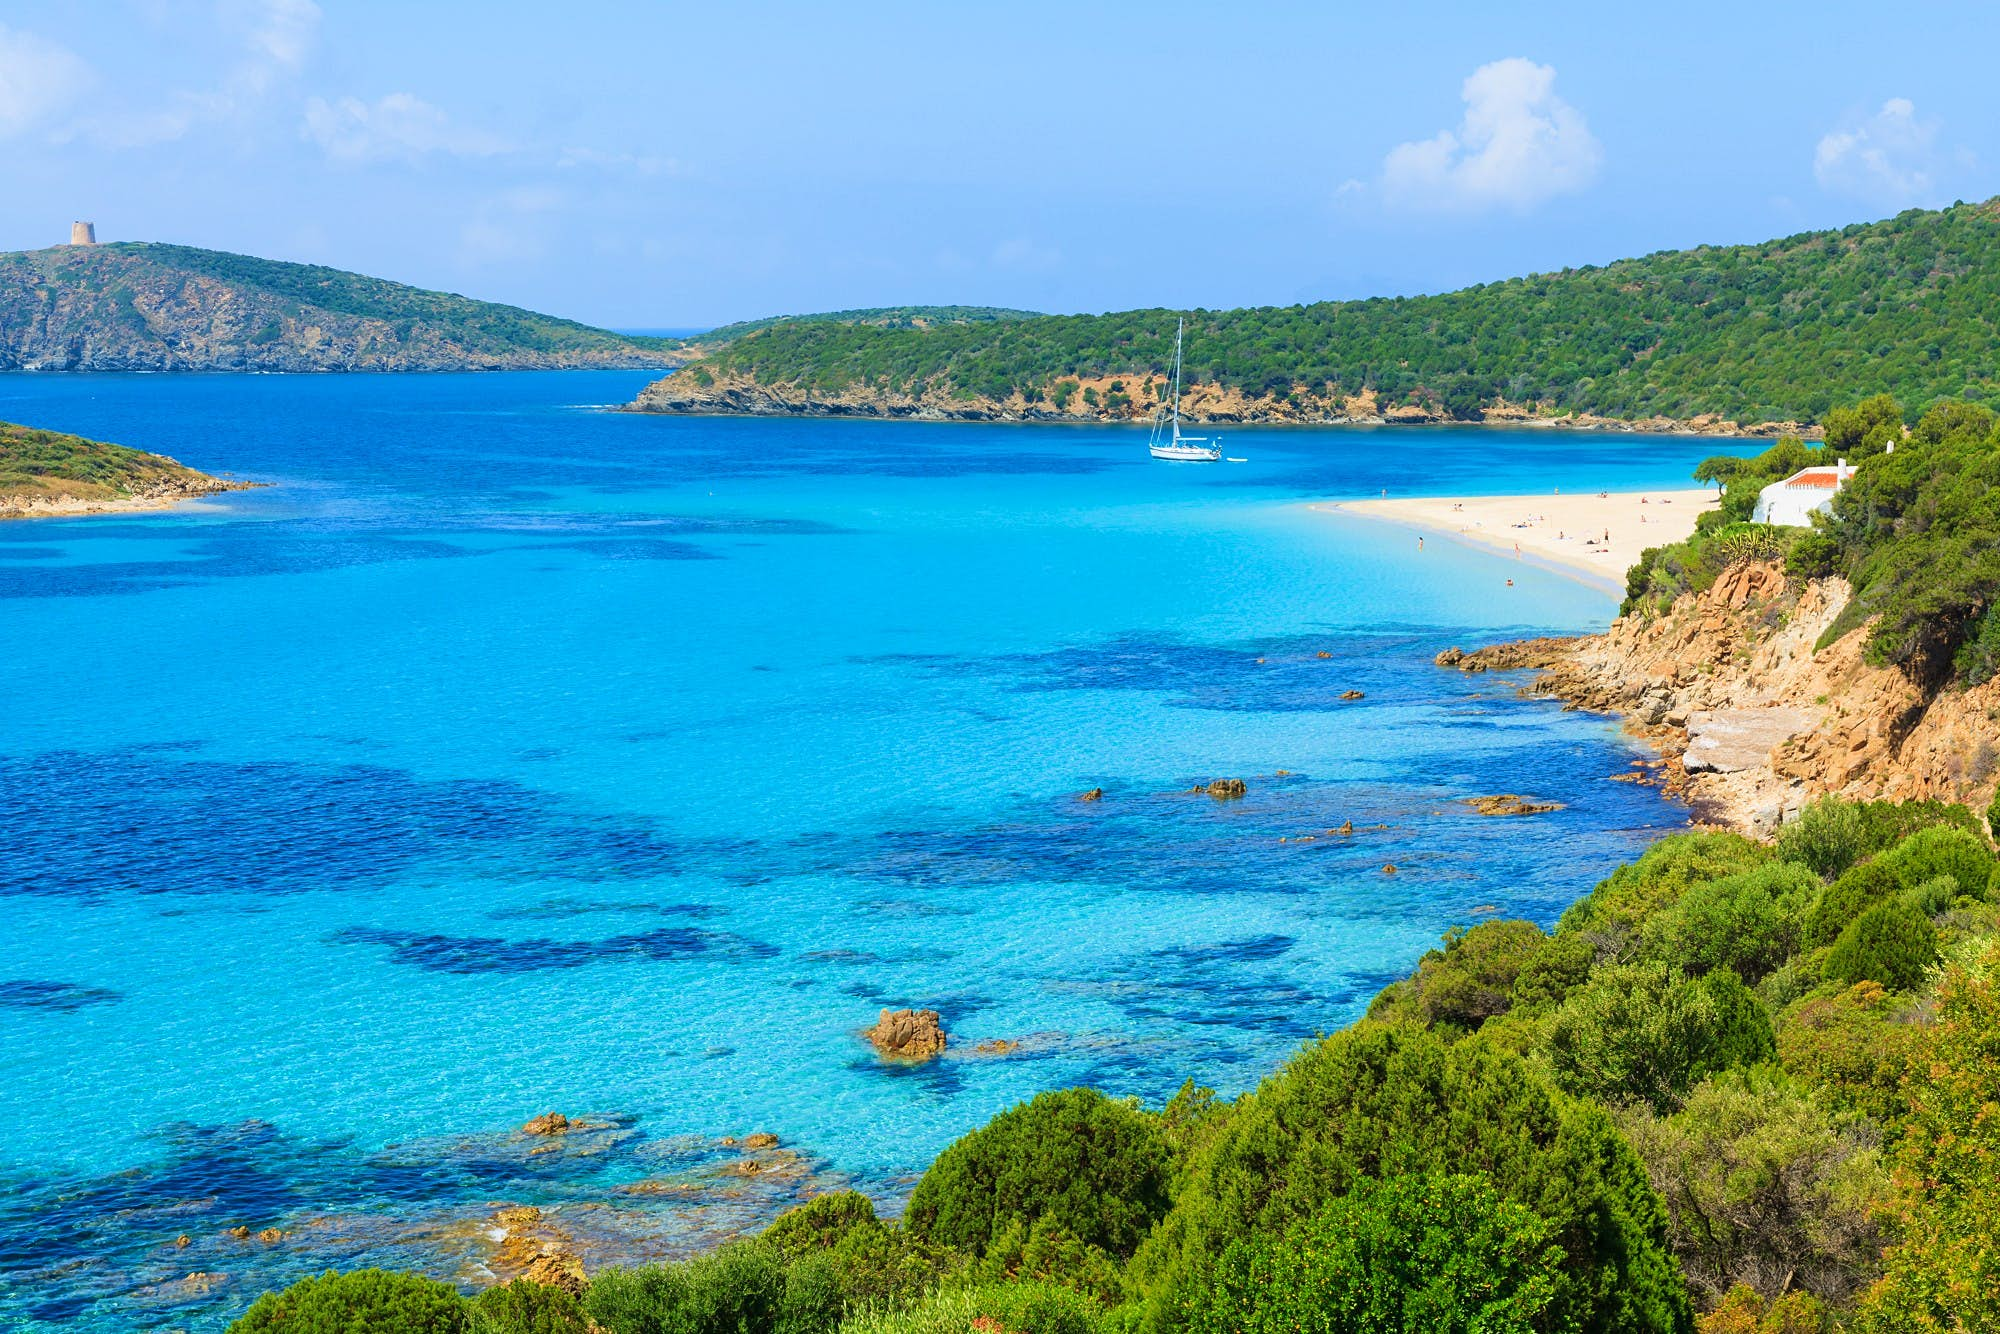 French tourists could face six years in prison for taking sand from a Sardinian beach